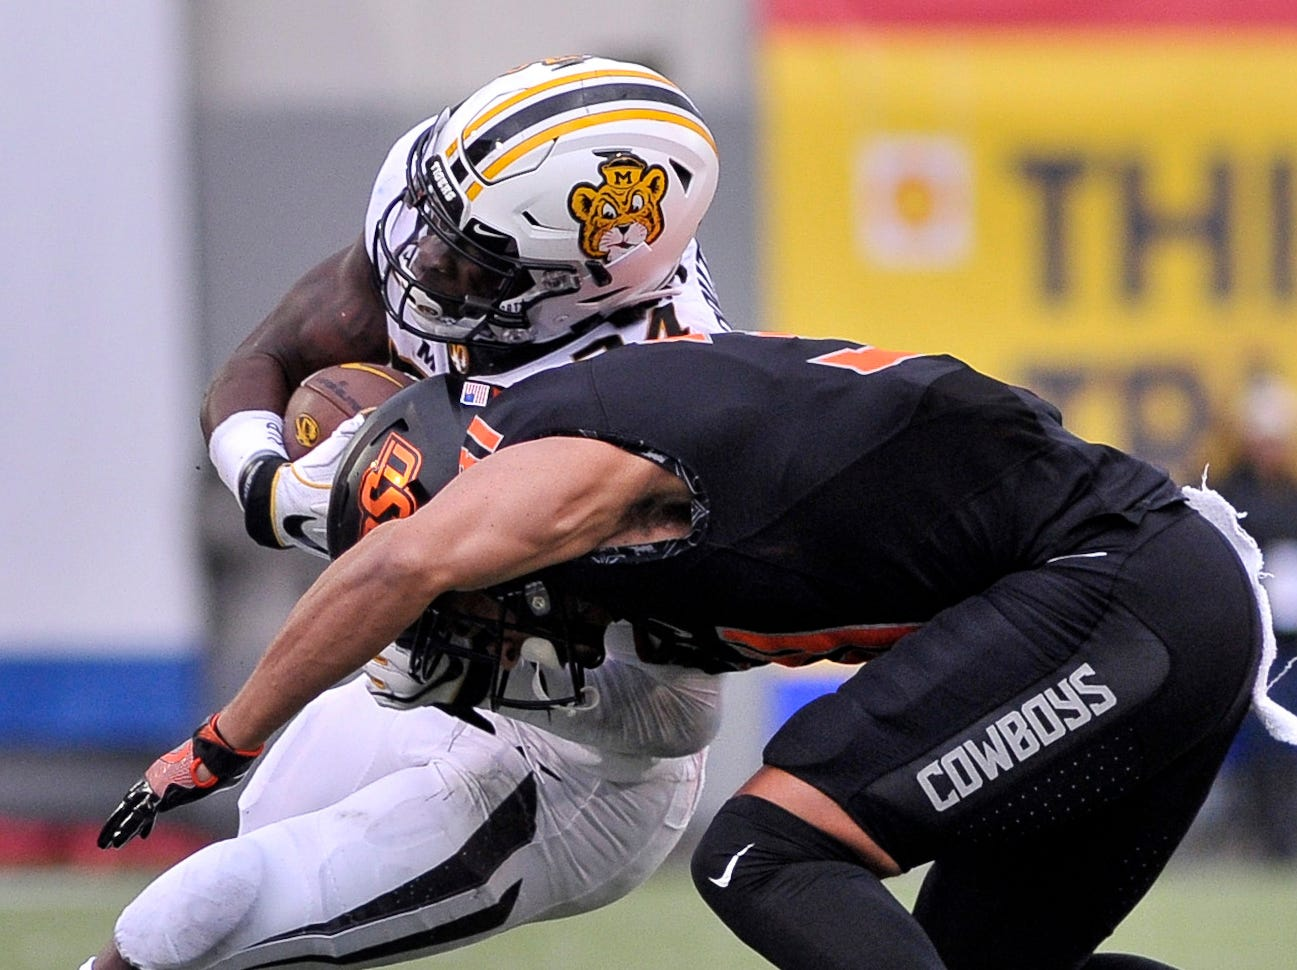 Missouri Tigers running back Larry Rountree III (34) carries the ball against Oklahoma State Cowboys safety Kolby Peel (31) during the first half in the Liberty Bowl.